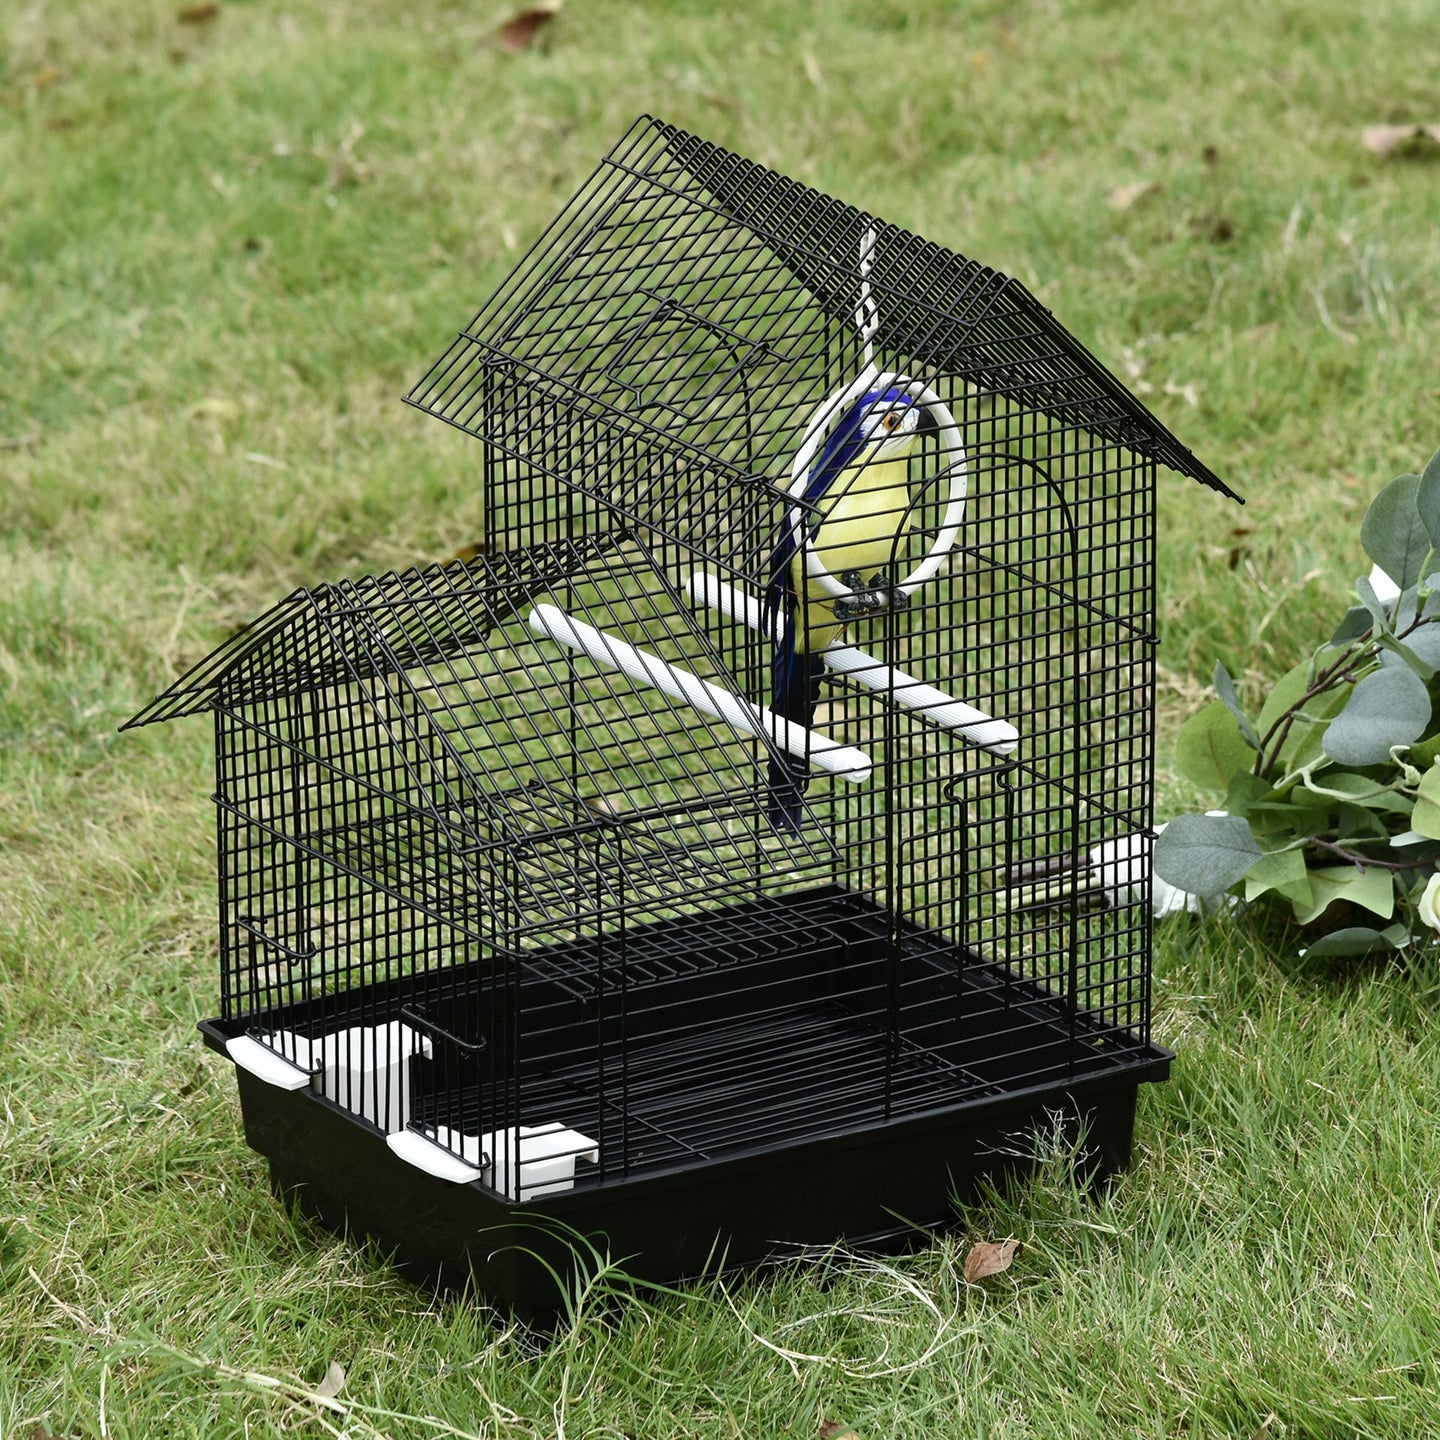 PawHut Metal Bird Cage with Plastic Perches Food Containers Swing Ring Tray Handle Small for Finch Canary Budgie Black 39 x 34 x 47 cm